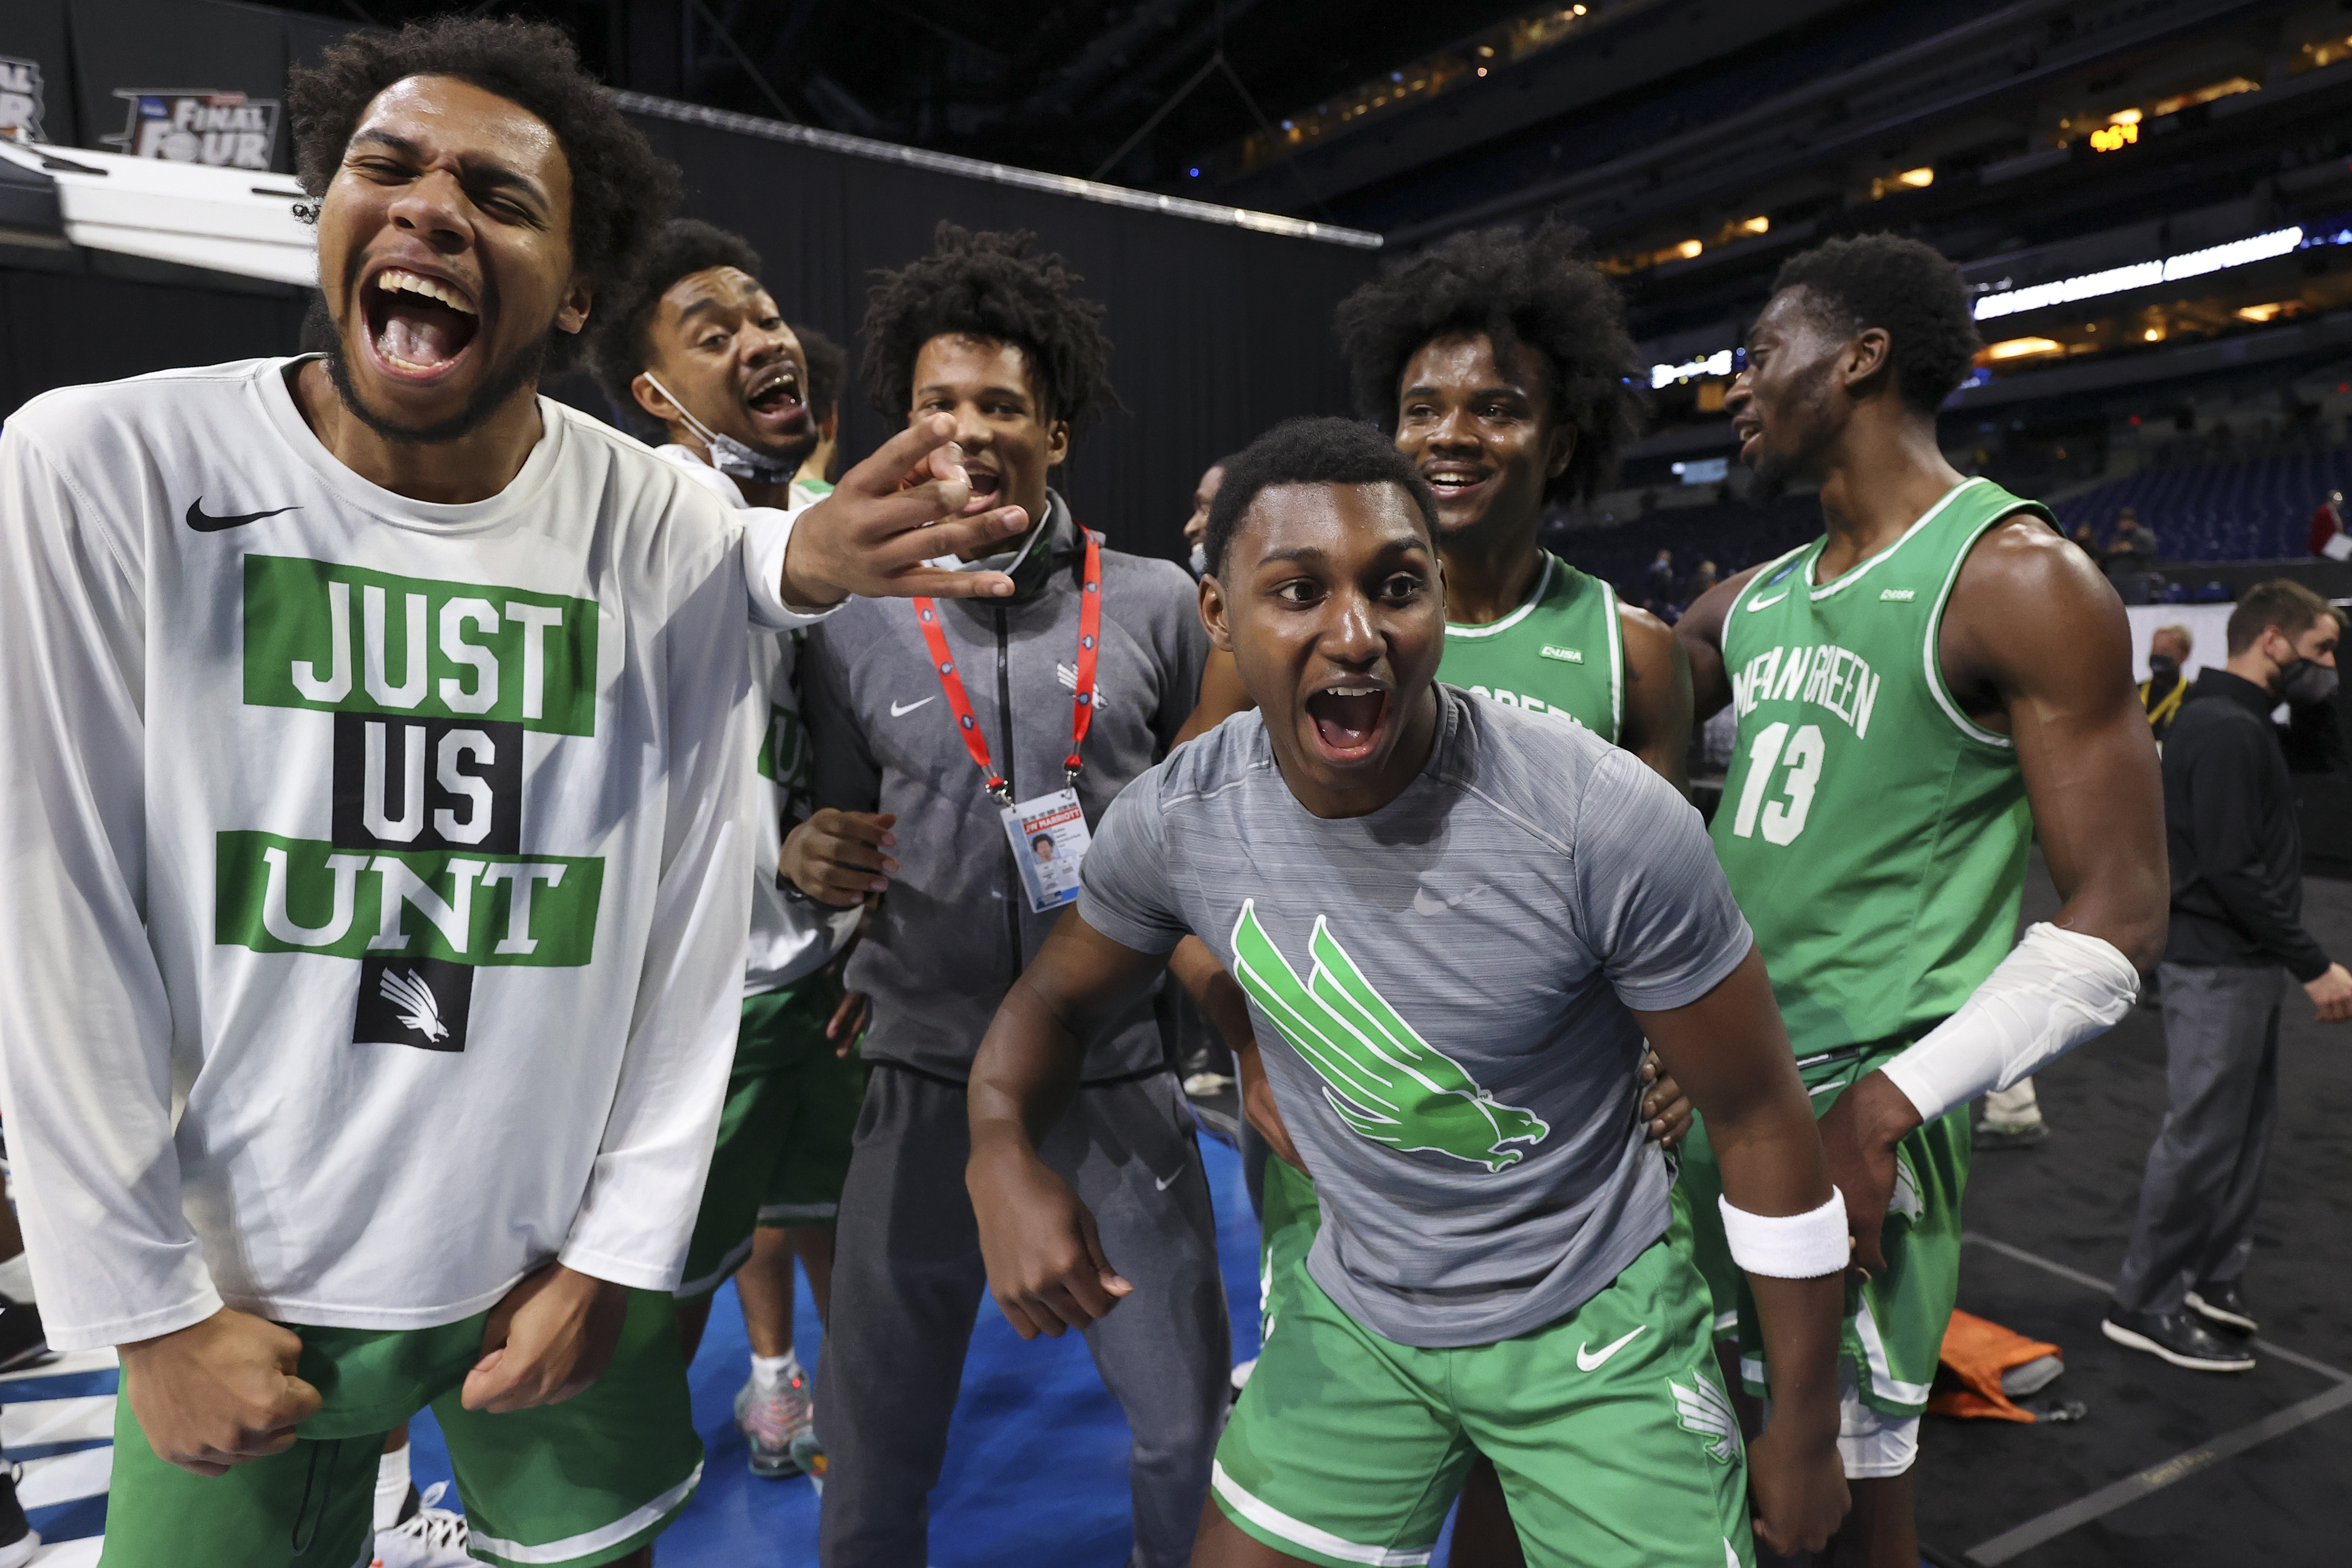 INDIANAPOLIS, IN - MARCH 19: The North Texas Mean Green celebrate their victory over the Purdue Boilermakers in the first round of the 2021 NCAA Division I Mens Basketball Tournament held at Lucas Oil Stadium on March 19, 2021 in Indianapolis, Indiana. (Photo by Jamie Schwaberow/NCAA Photos via Getty Images)